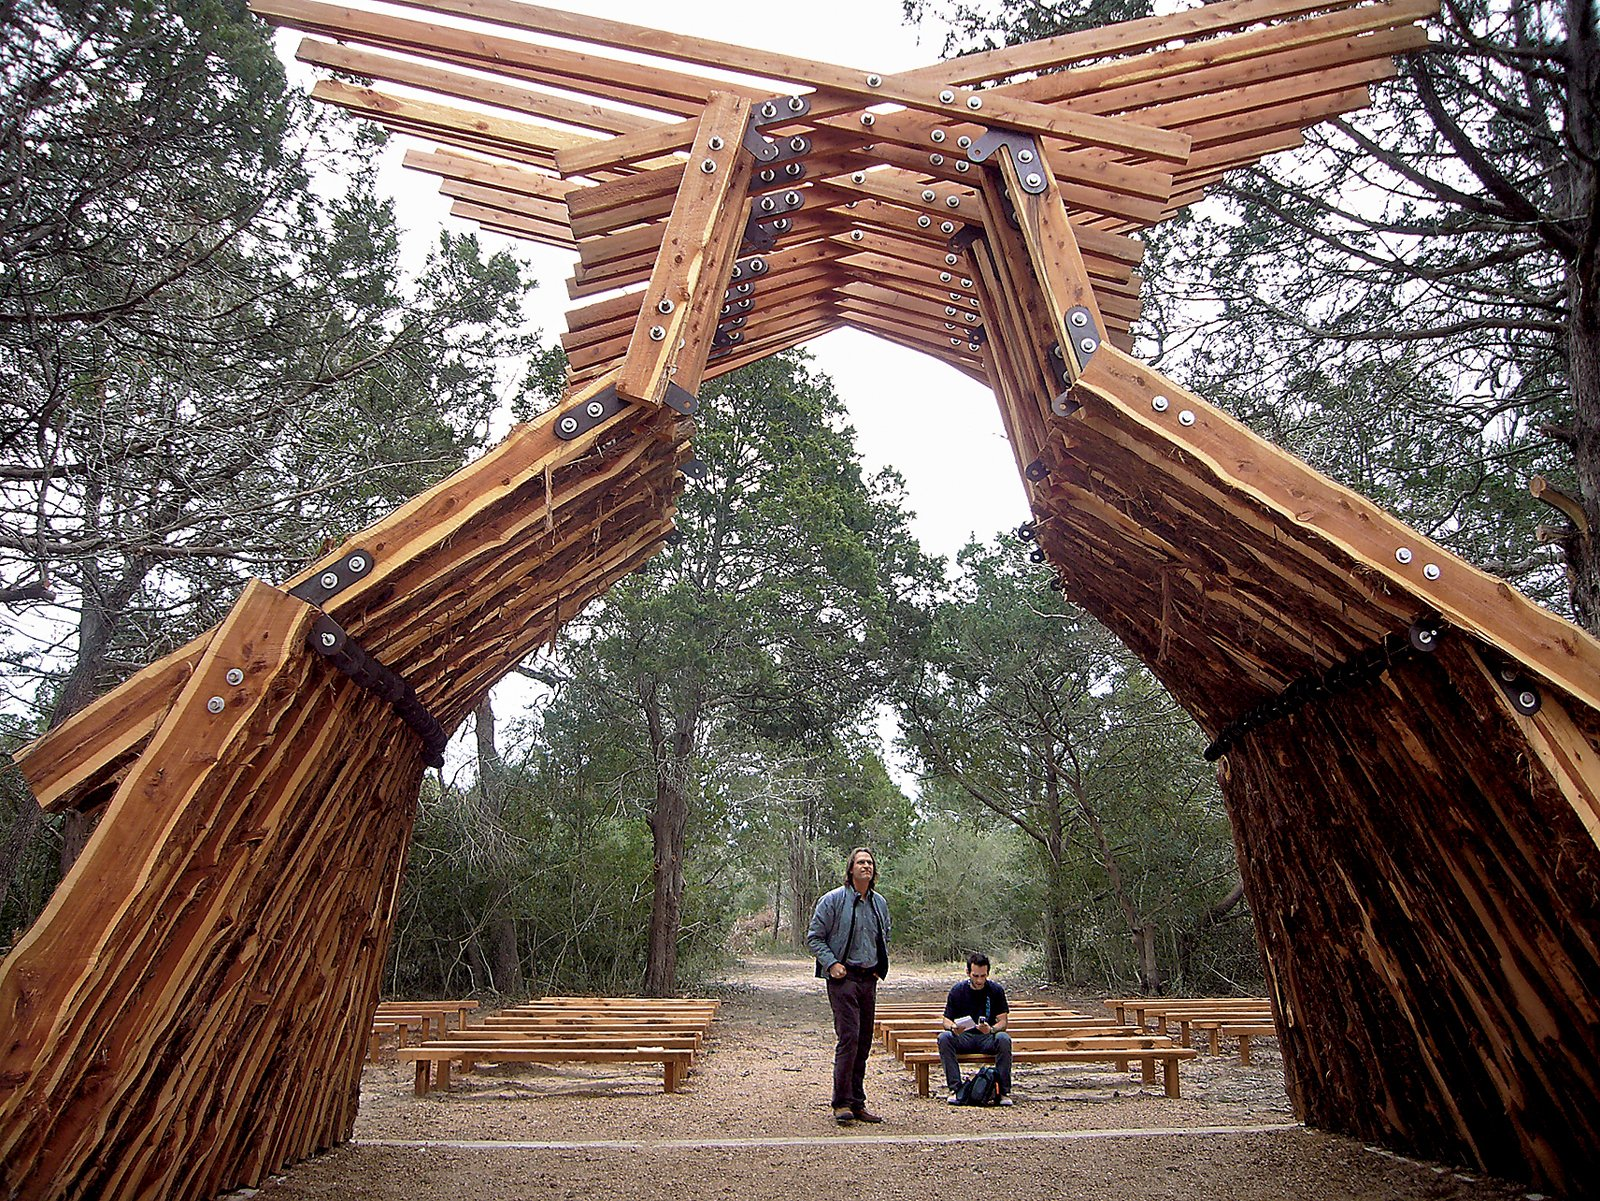 """Legge says he finds new ways of looking at the structure each time he visits it. """"When the sun goes down in summer,"""" he says, """"the light through the wood sets the whole thing on fire."""""""